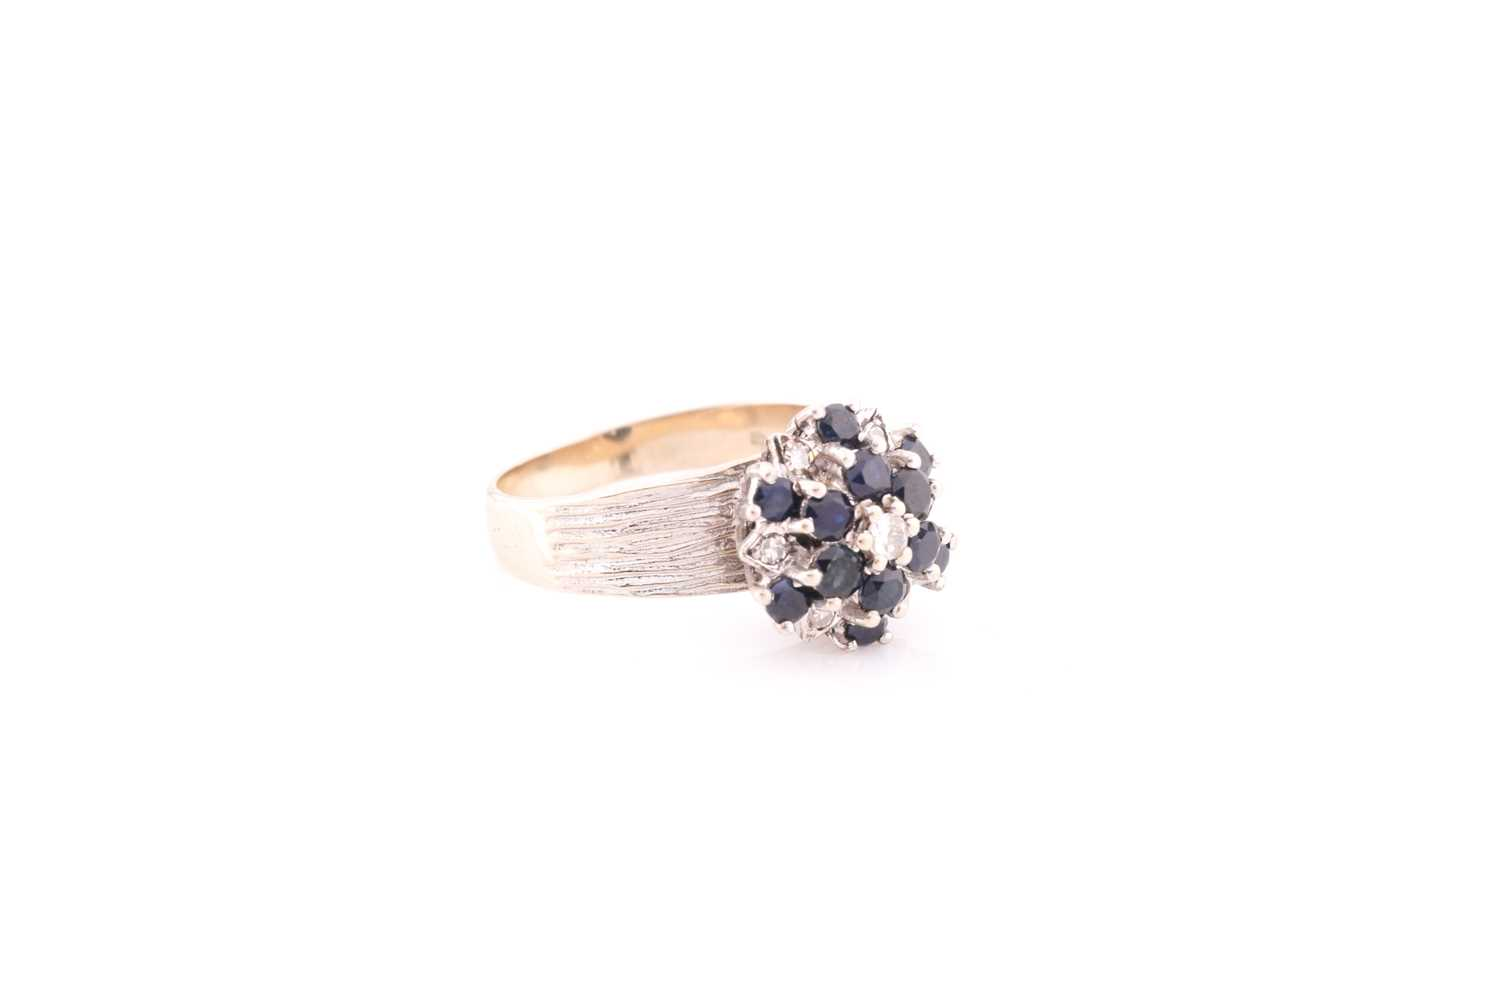 An 18ct white gold, diamond, and sapphire cluster ring, set with a cluster of round-cut sapphires - Image 2 of 4